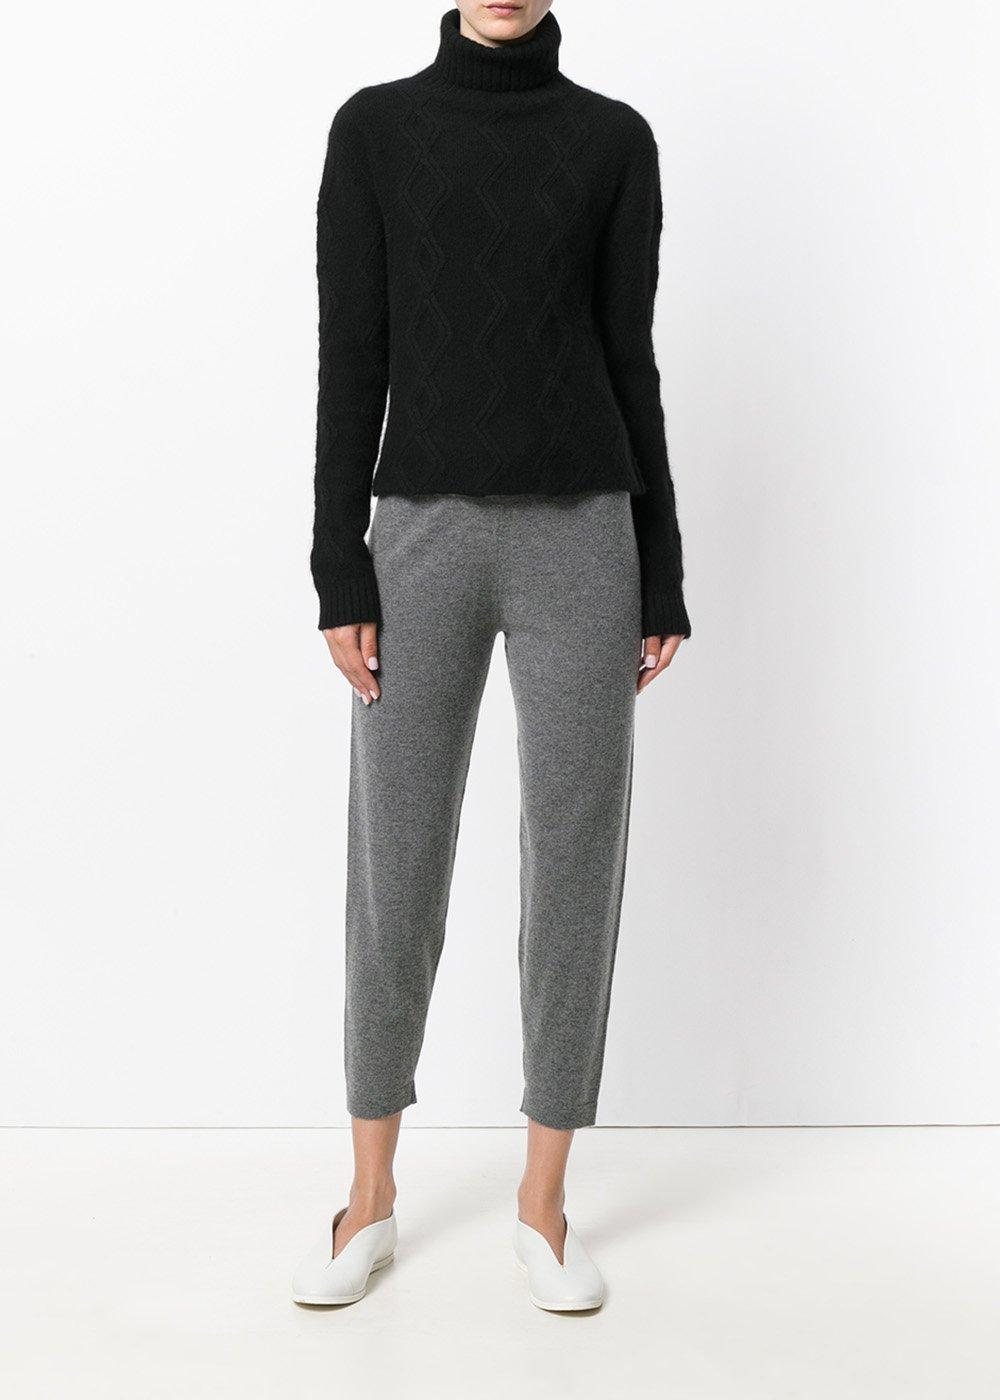 Tess Cable Knit Cropped Jumper